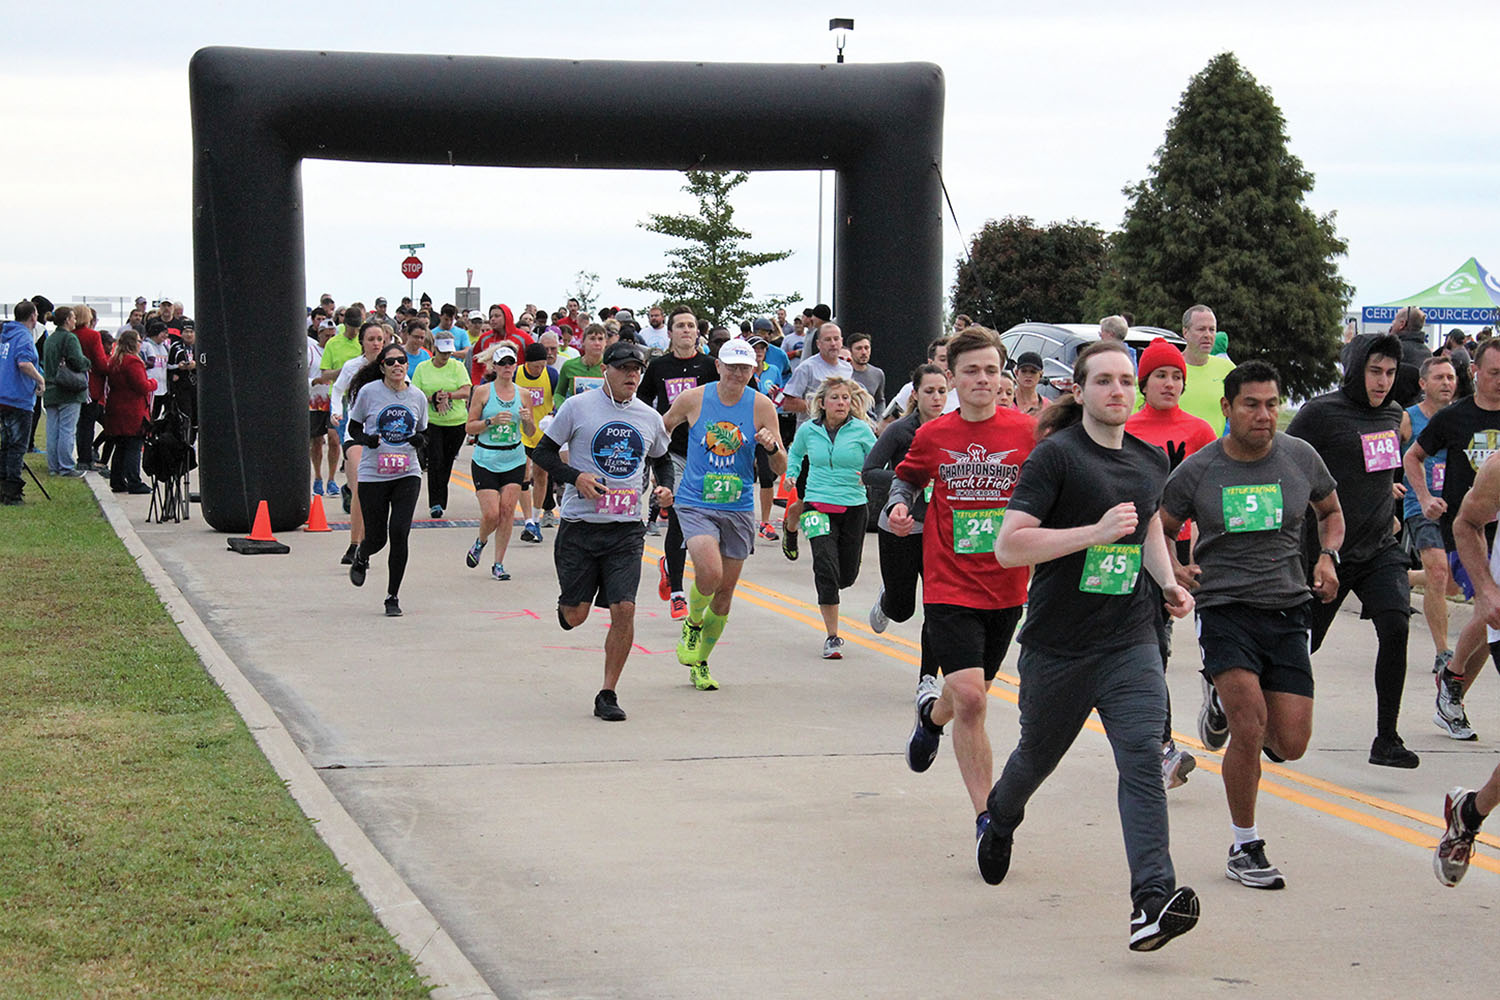 This year's Tulsa Port Harbor Dash brought together more than 250 runners for the 5K, 10K and family-fun run. The run, which had its inaugural race last year, was developed by the port to bring awareness to the river, the port and its tenants. (photo courtesy of the Tulsa Port of Catoosa)